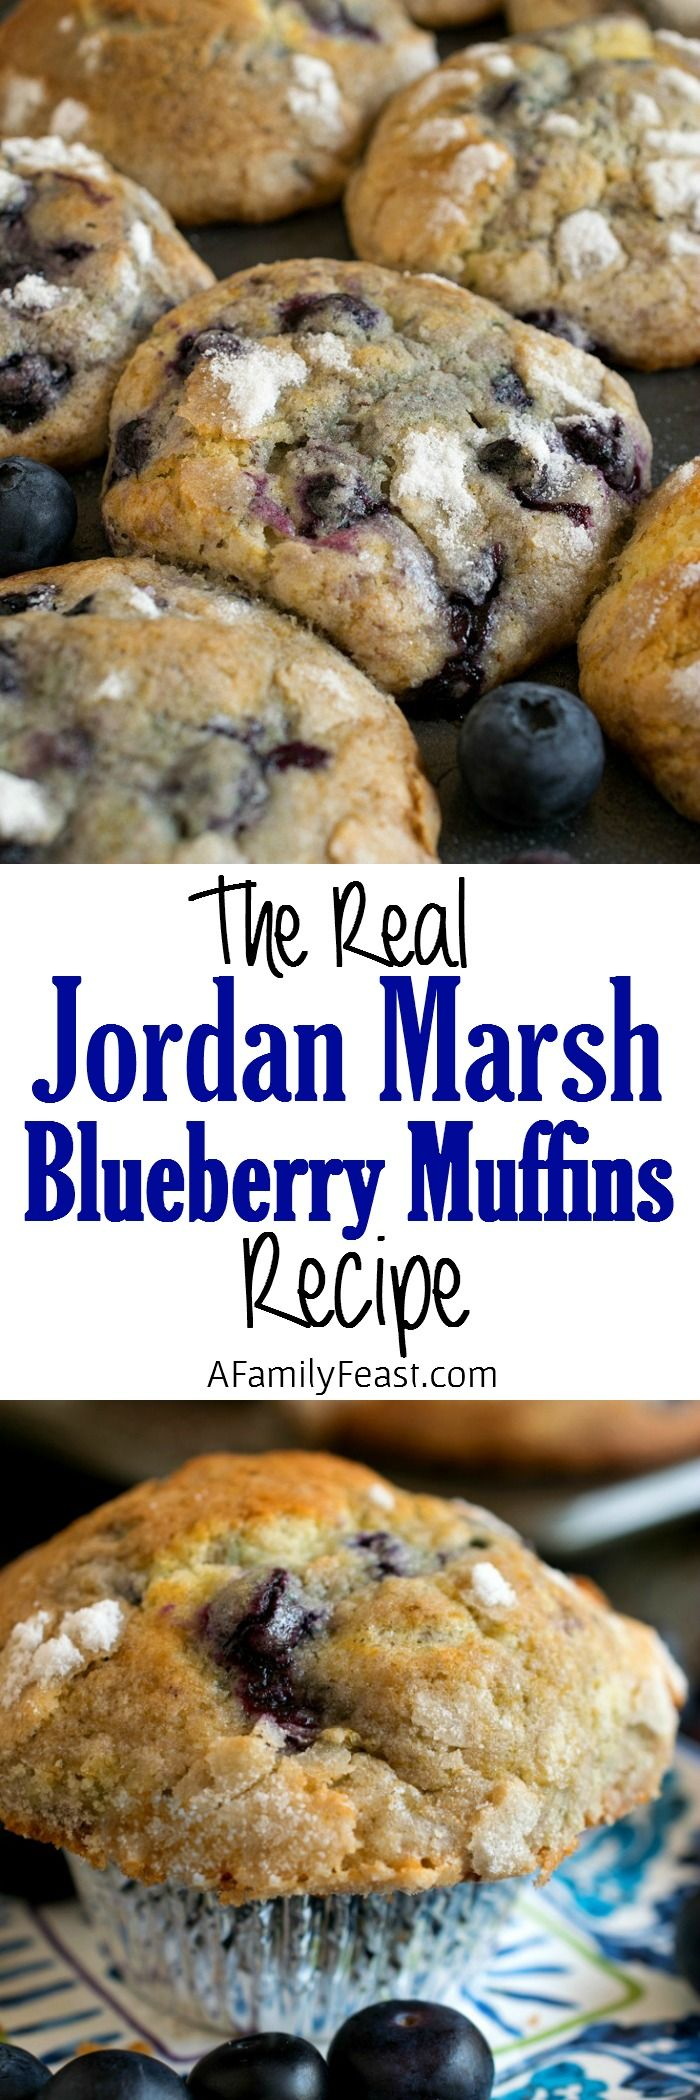 Jordan Marsh Blueberry Muffins are legendary in the Boston area. We're sharing the recipe today – including tips and tricks from the man who baked these muffins for 45 years.